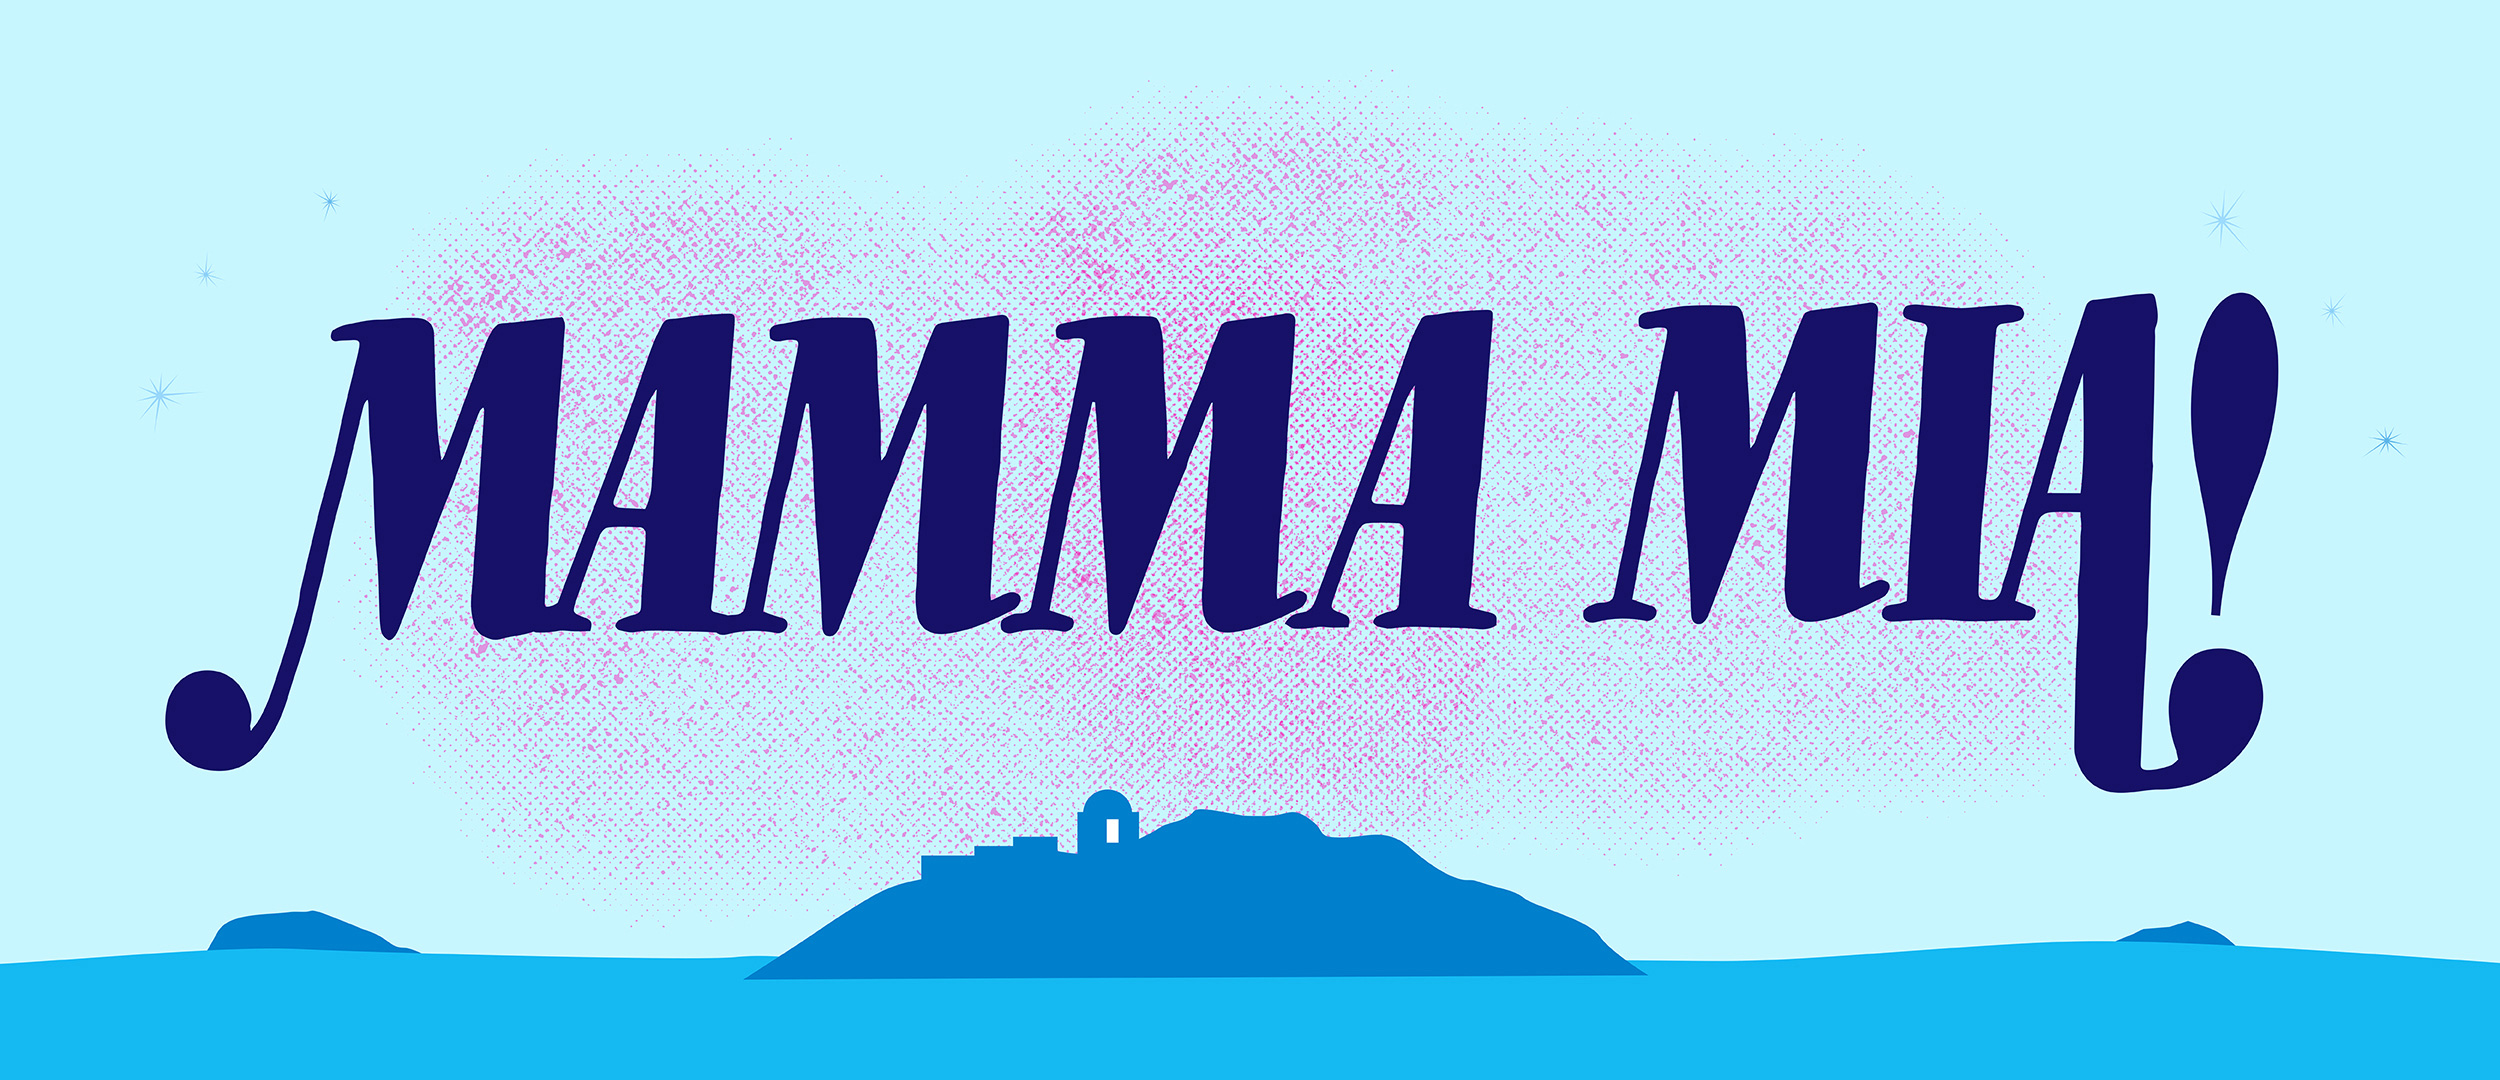 Mamma Mia Show Package Projected Backdrop for Mamma Mia, Show, Theater